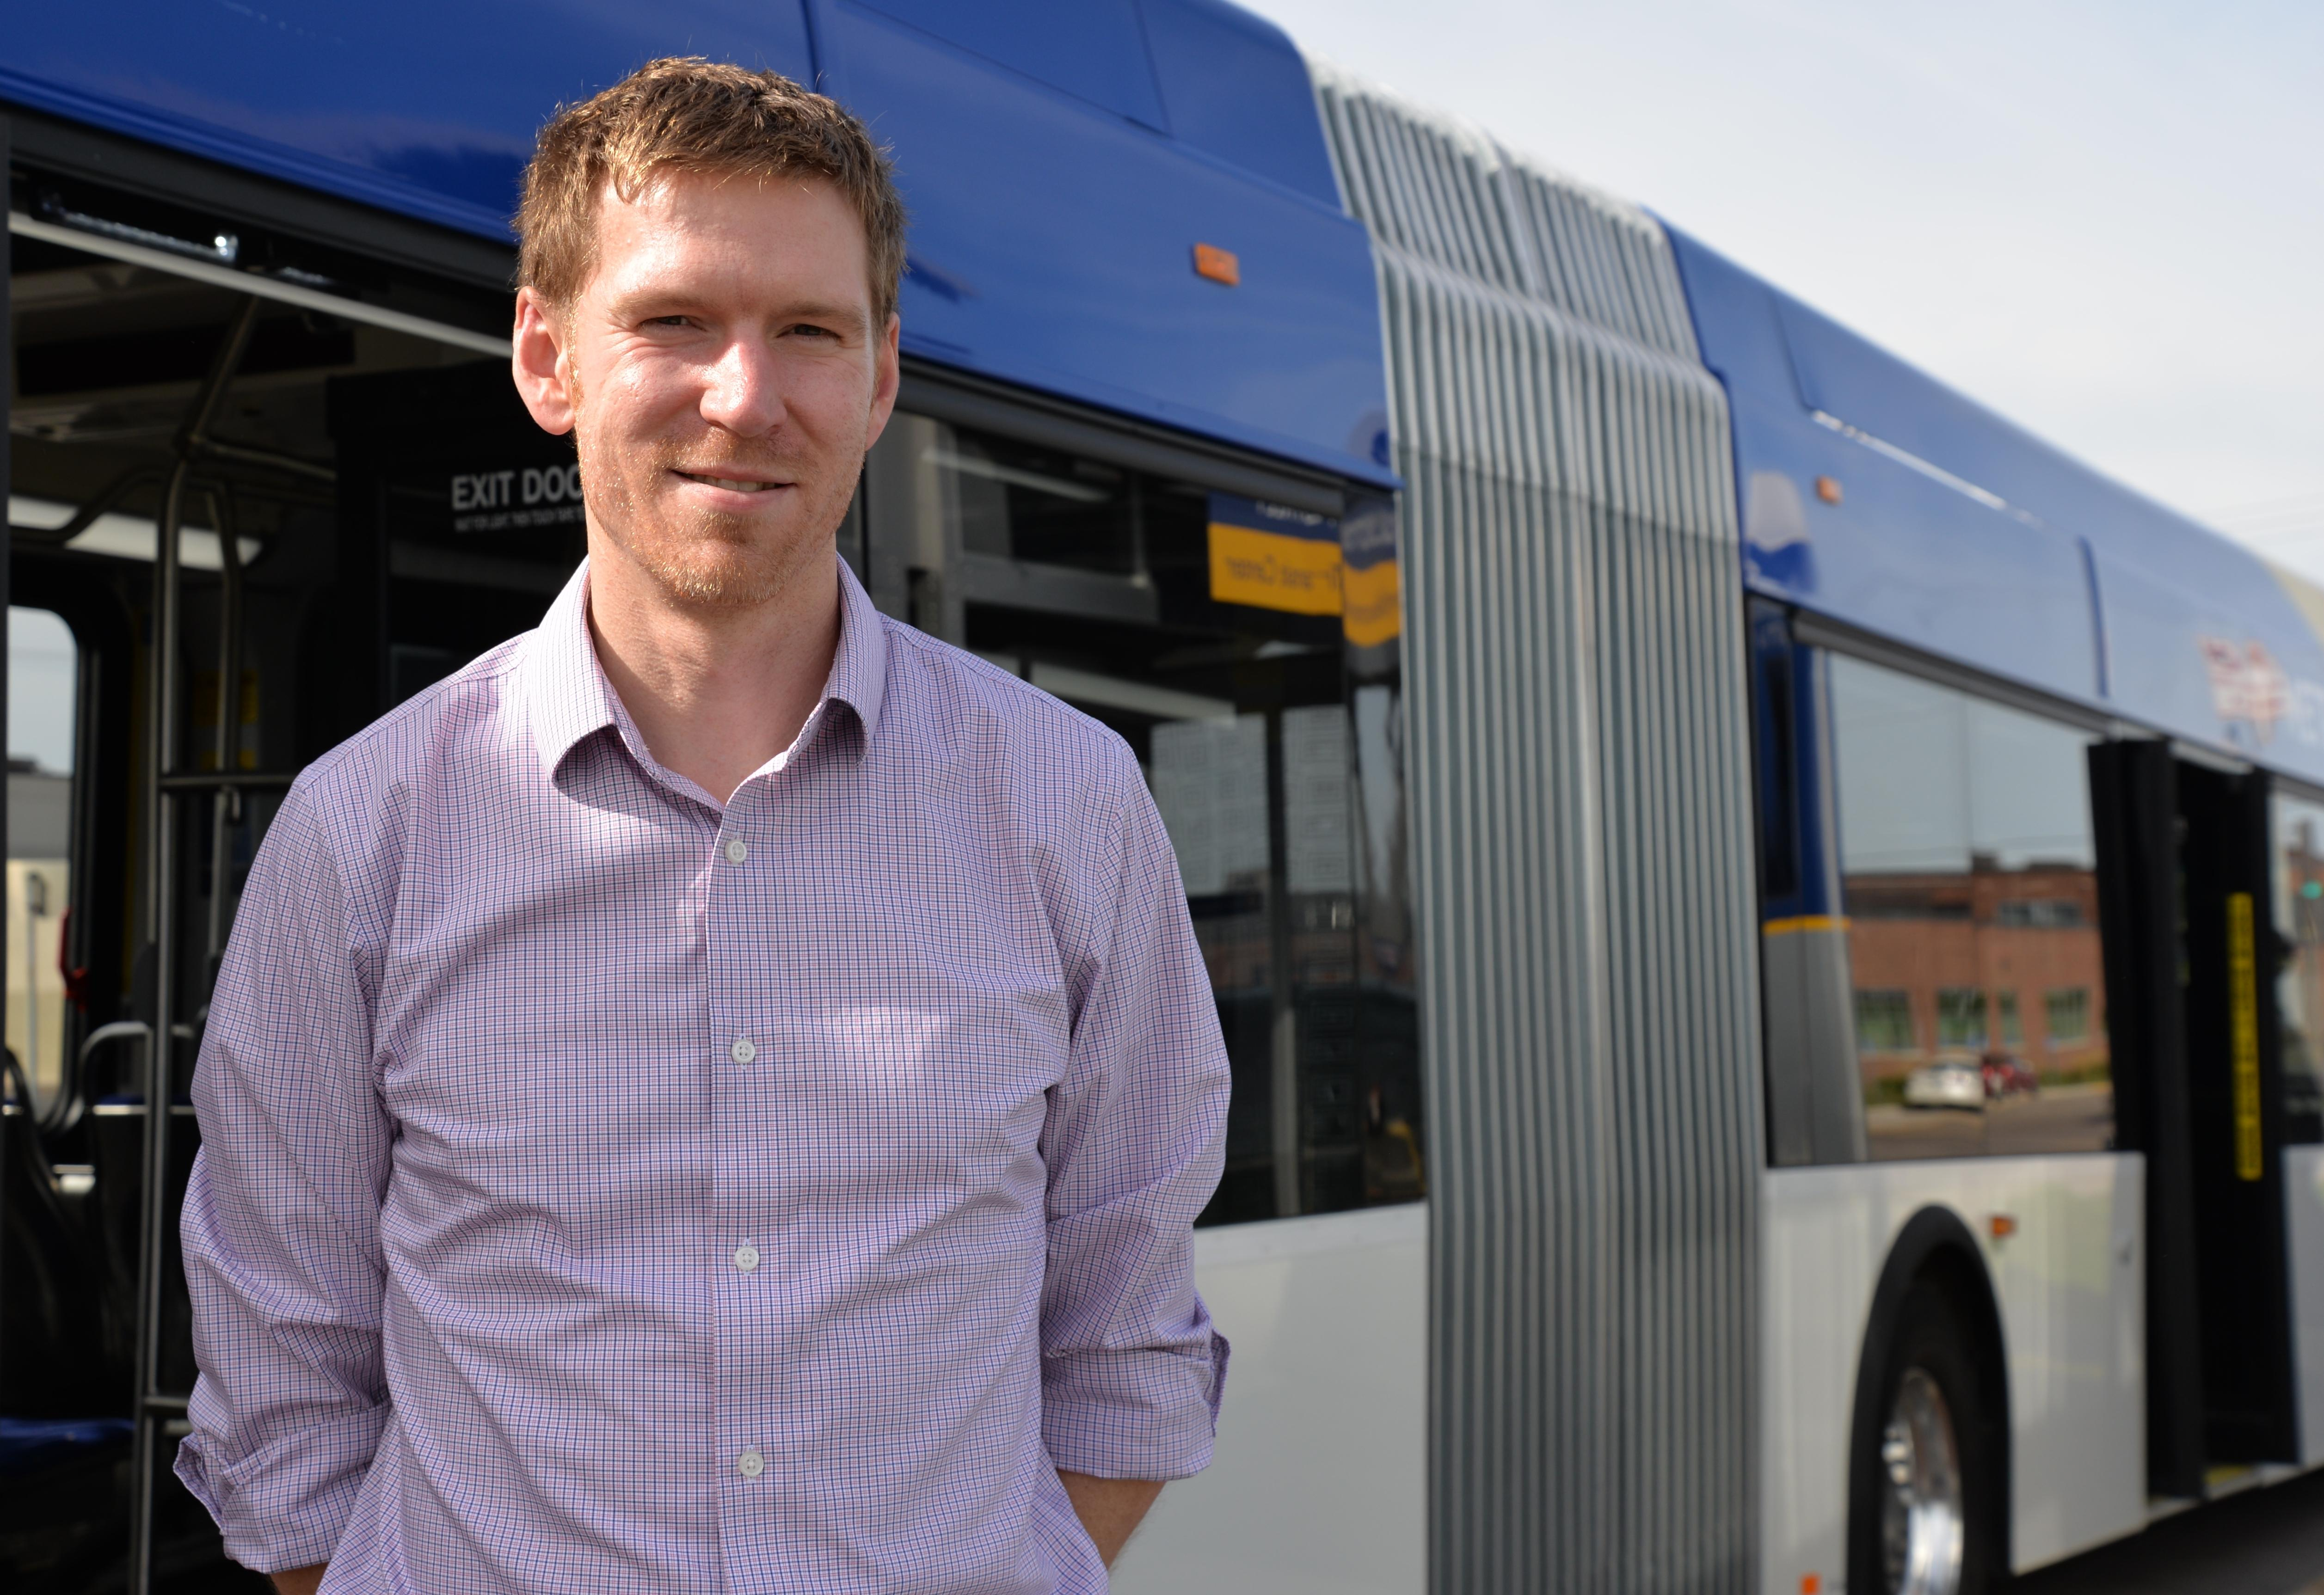 Michael Mechtenberg commutes on Route 134 and other routes that run between downtown Minneapolis and the Heywood Garage, including the METRO C Line.